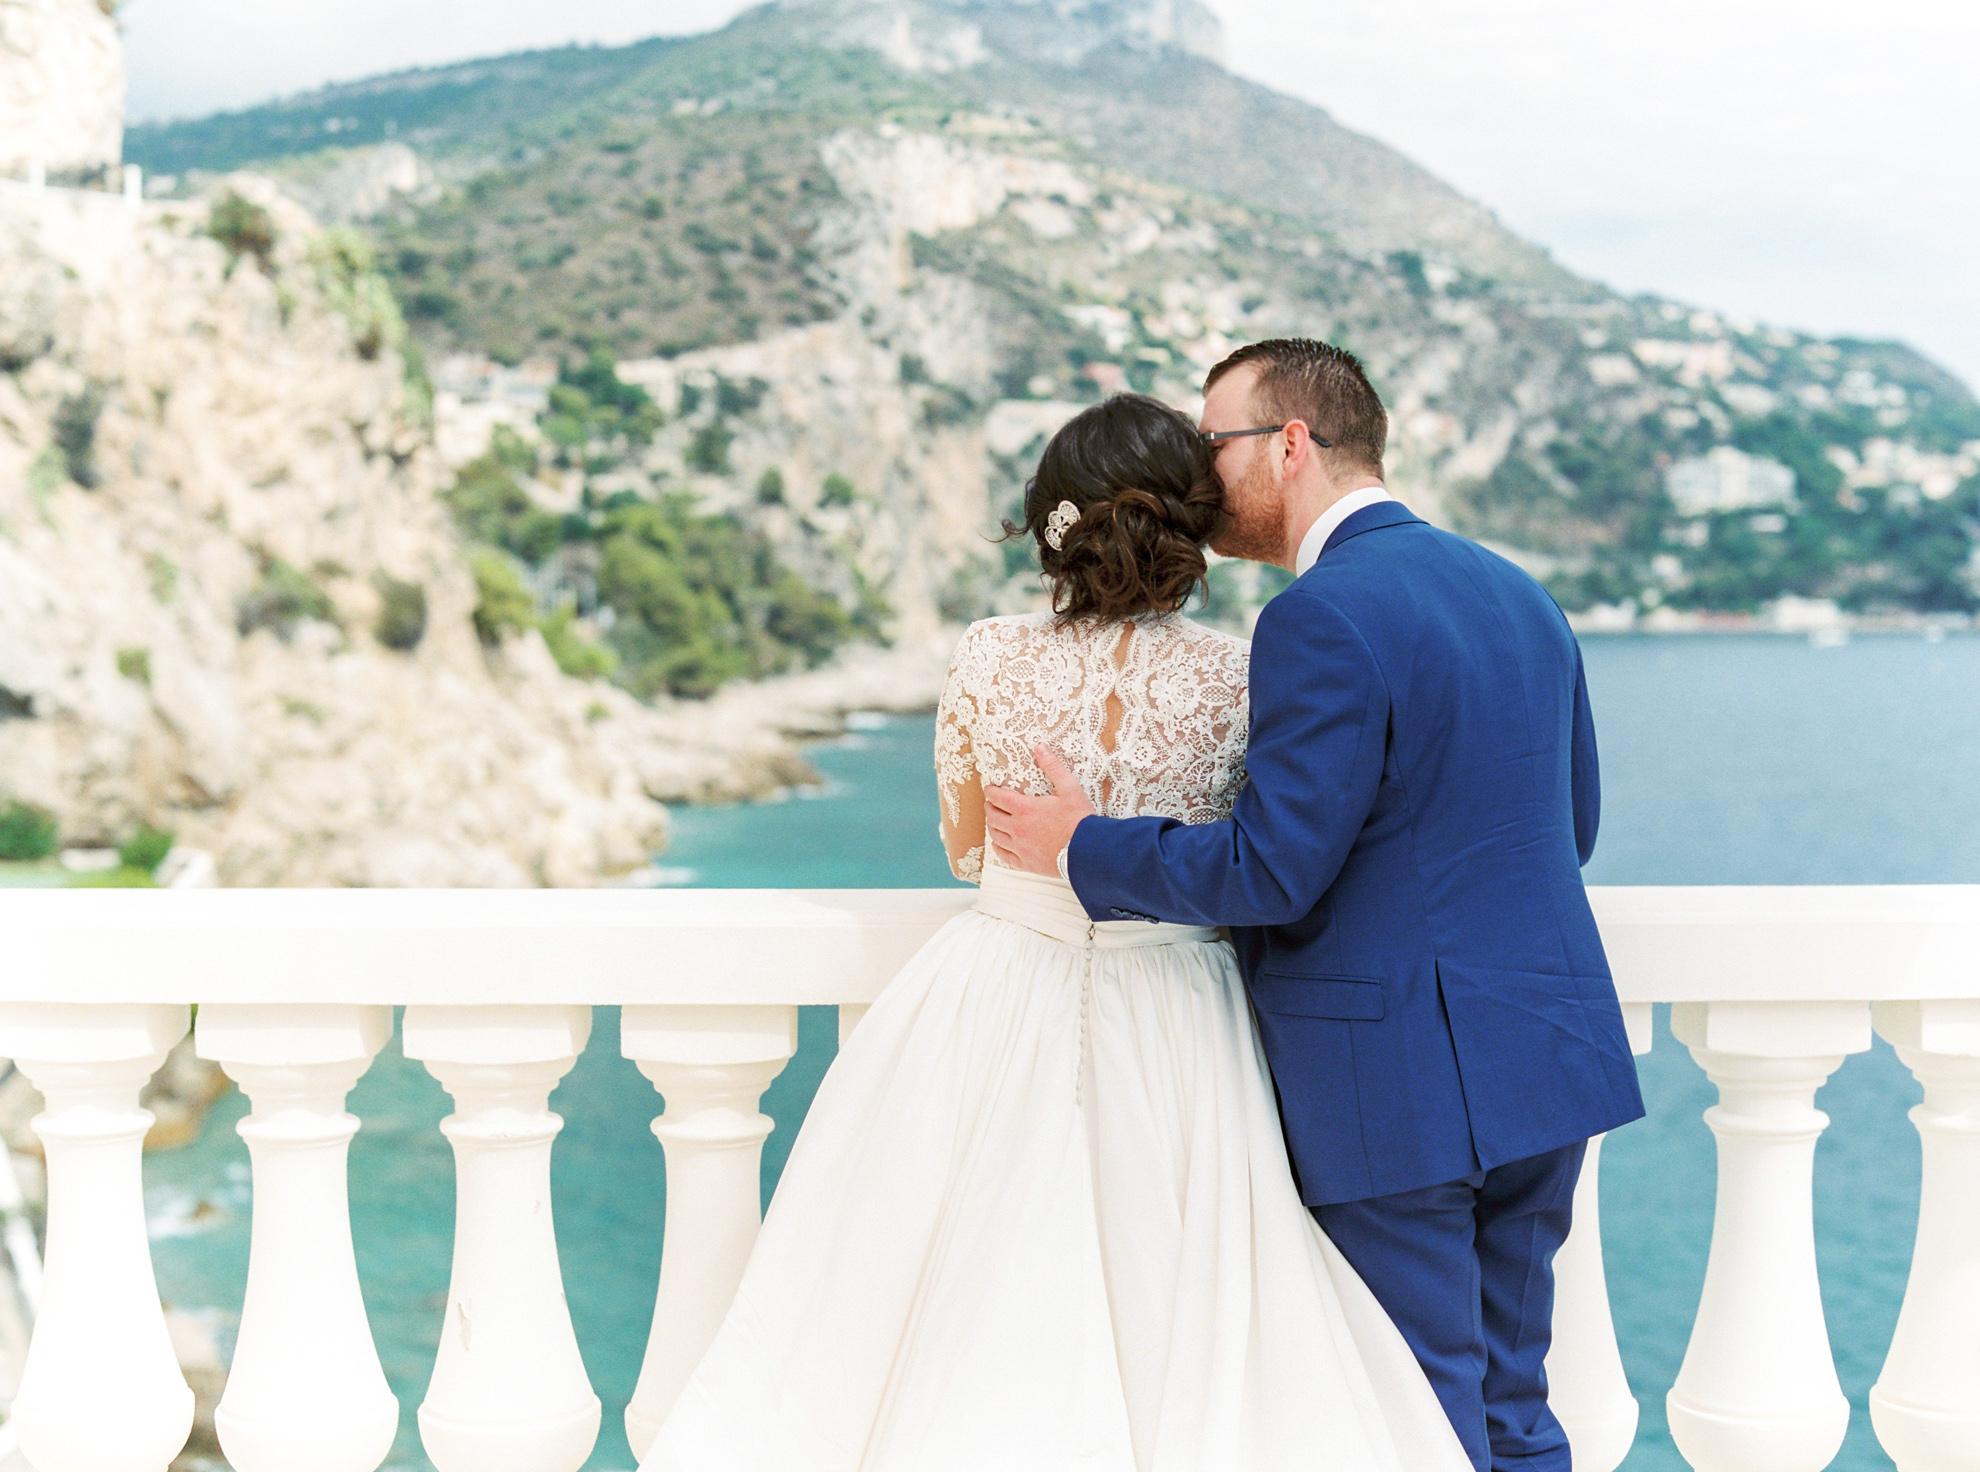 24 Romantic French Riviera Elopement at Cap Estel by Tony Gigov